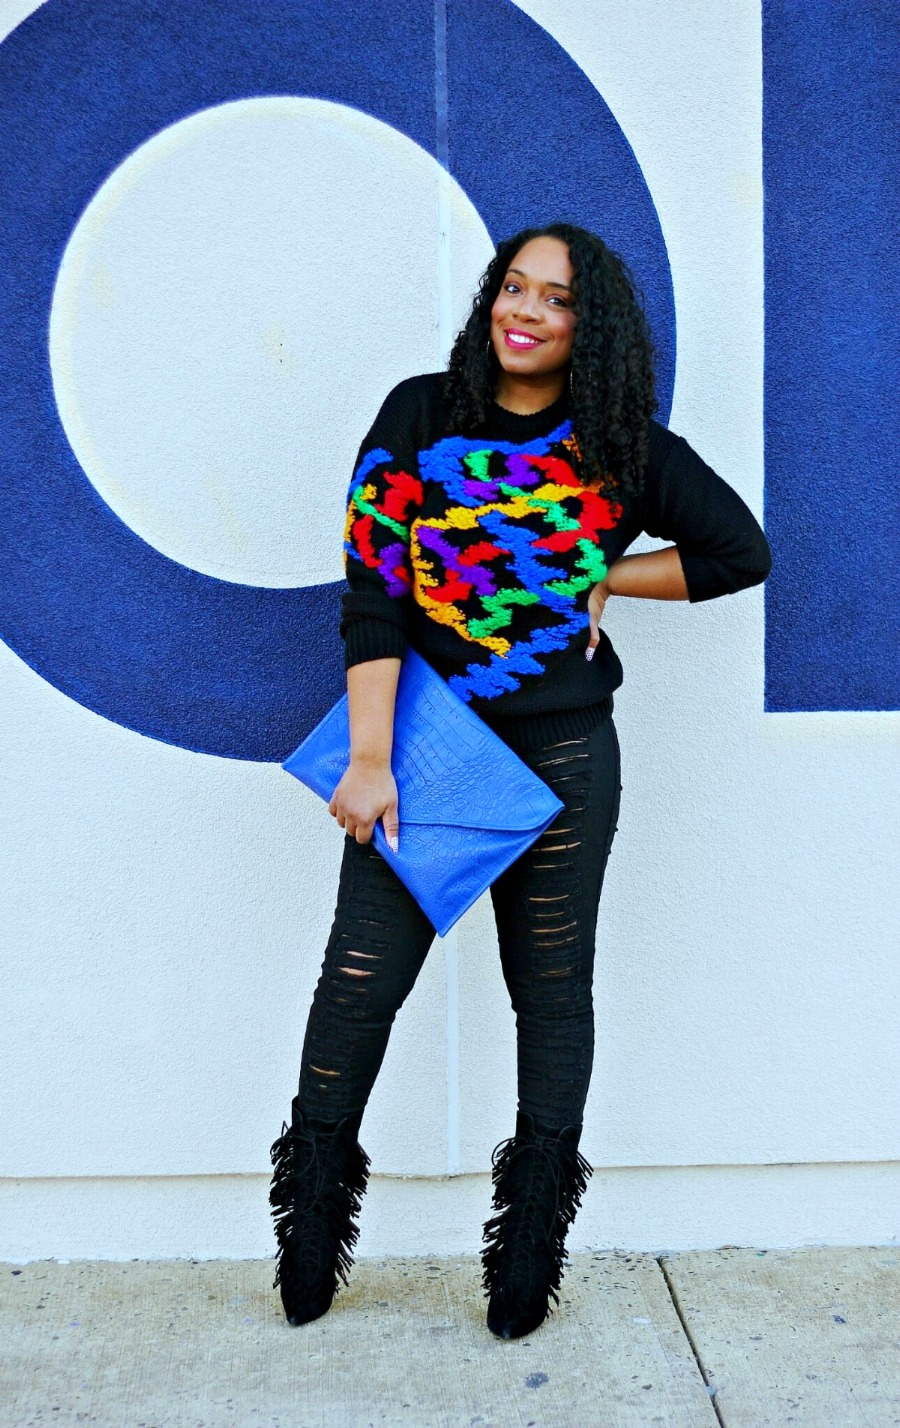 Style & Poise: Vintage Sweater